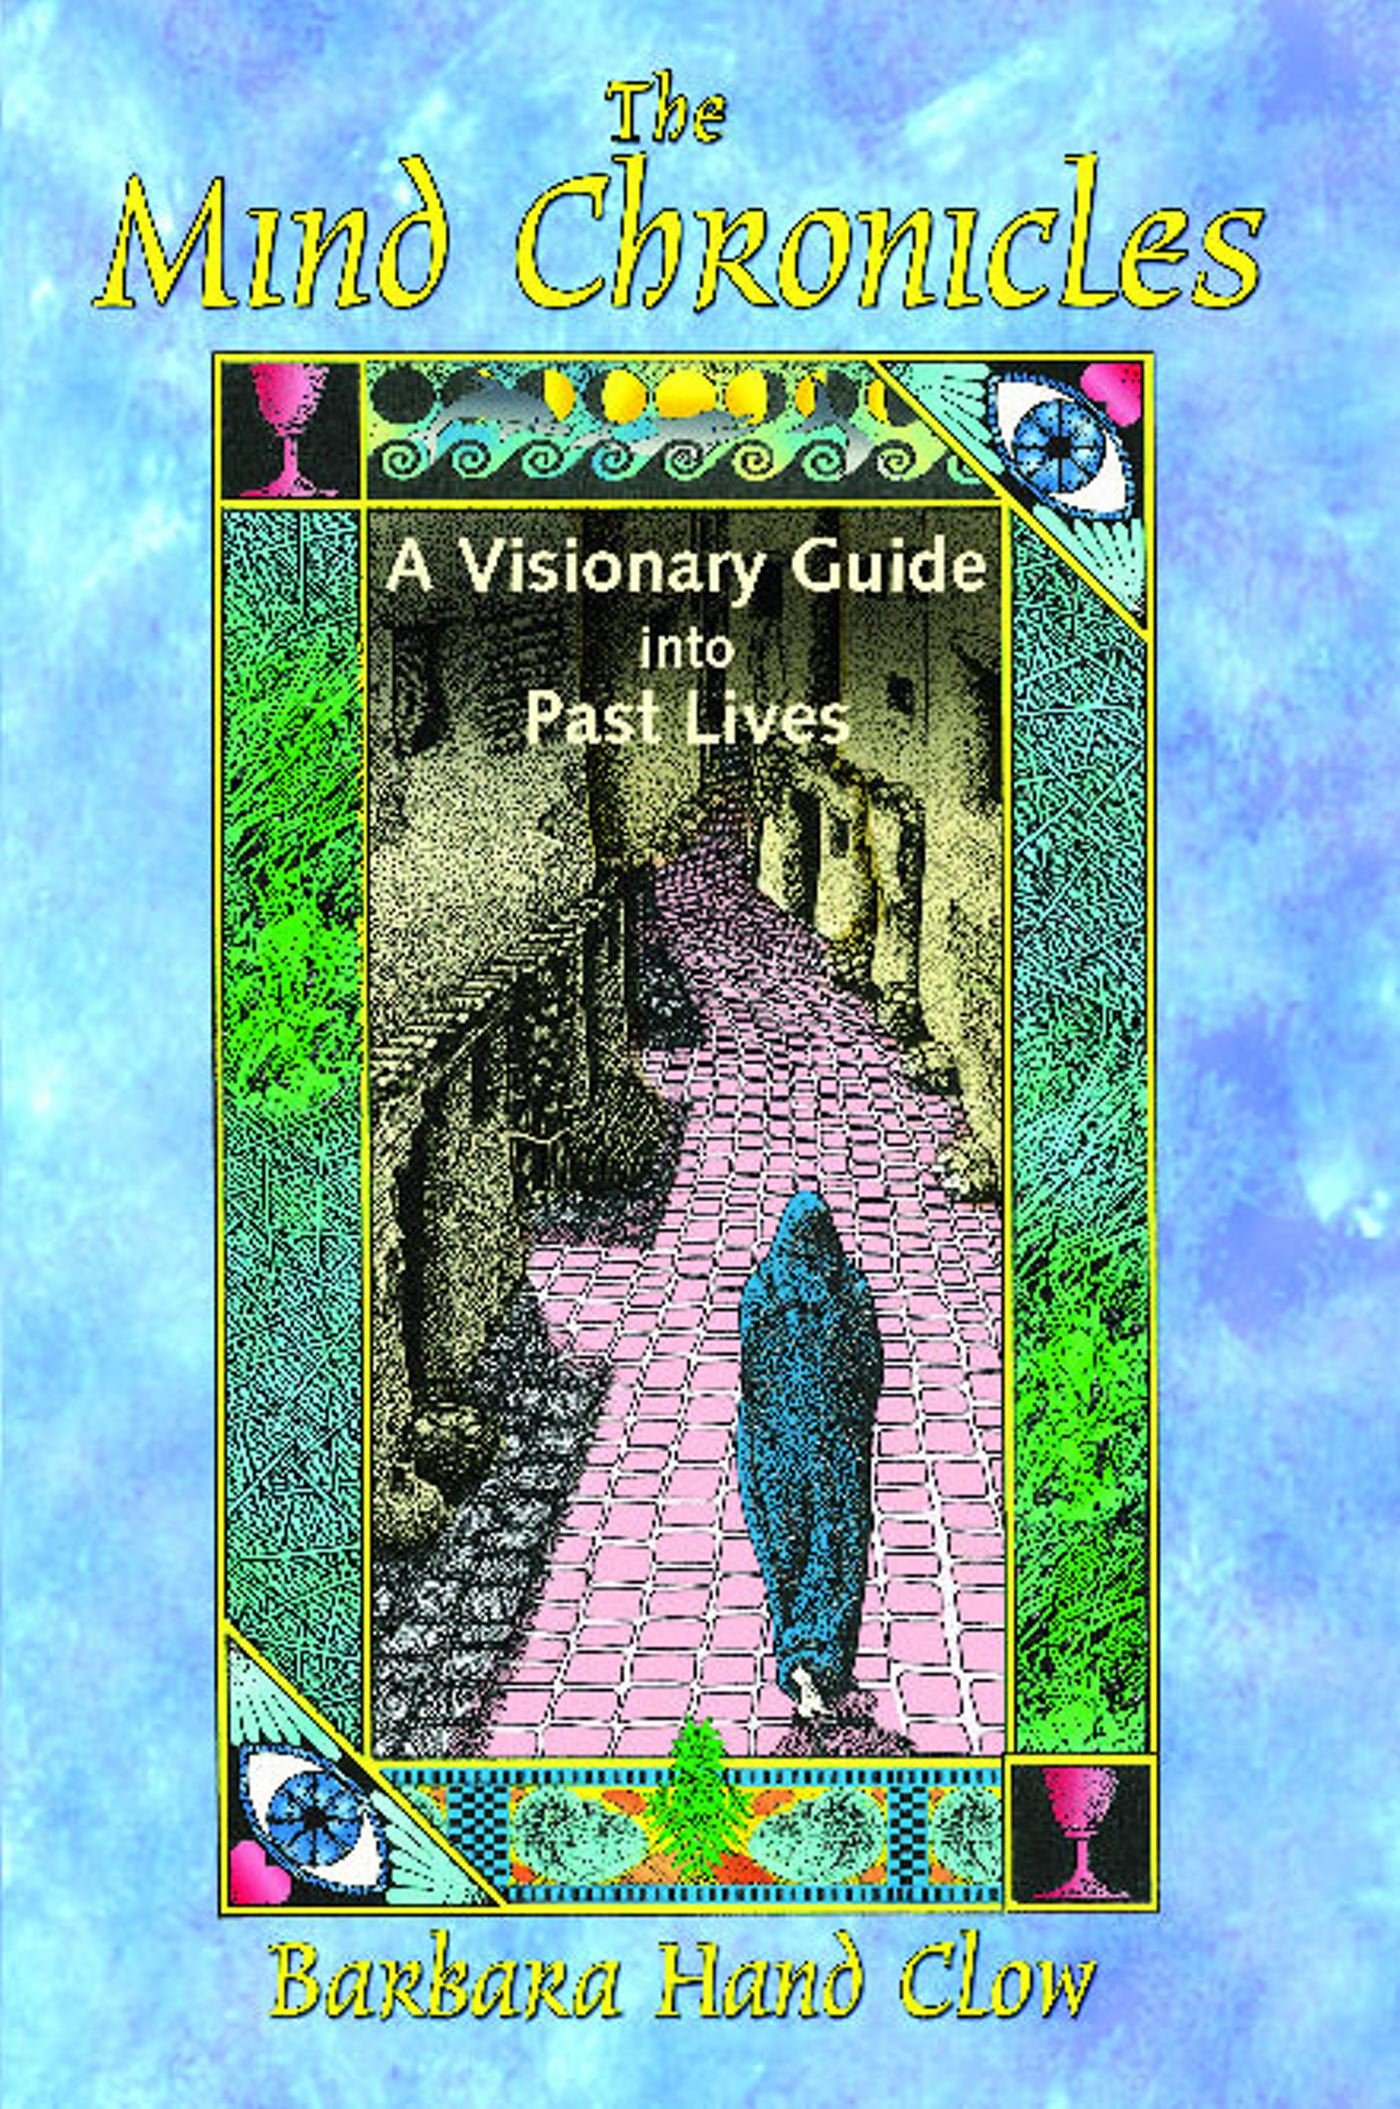 The Mind Chronicles: A Visionary Guide into Past Lives